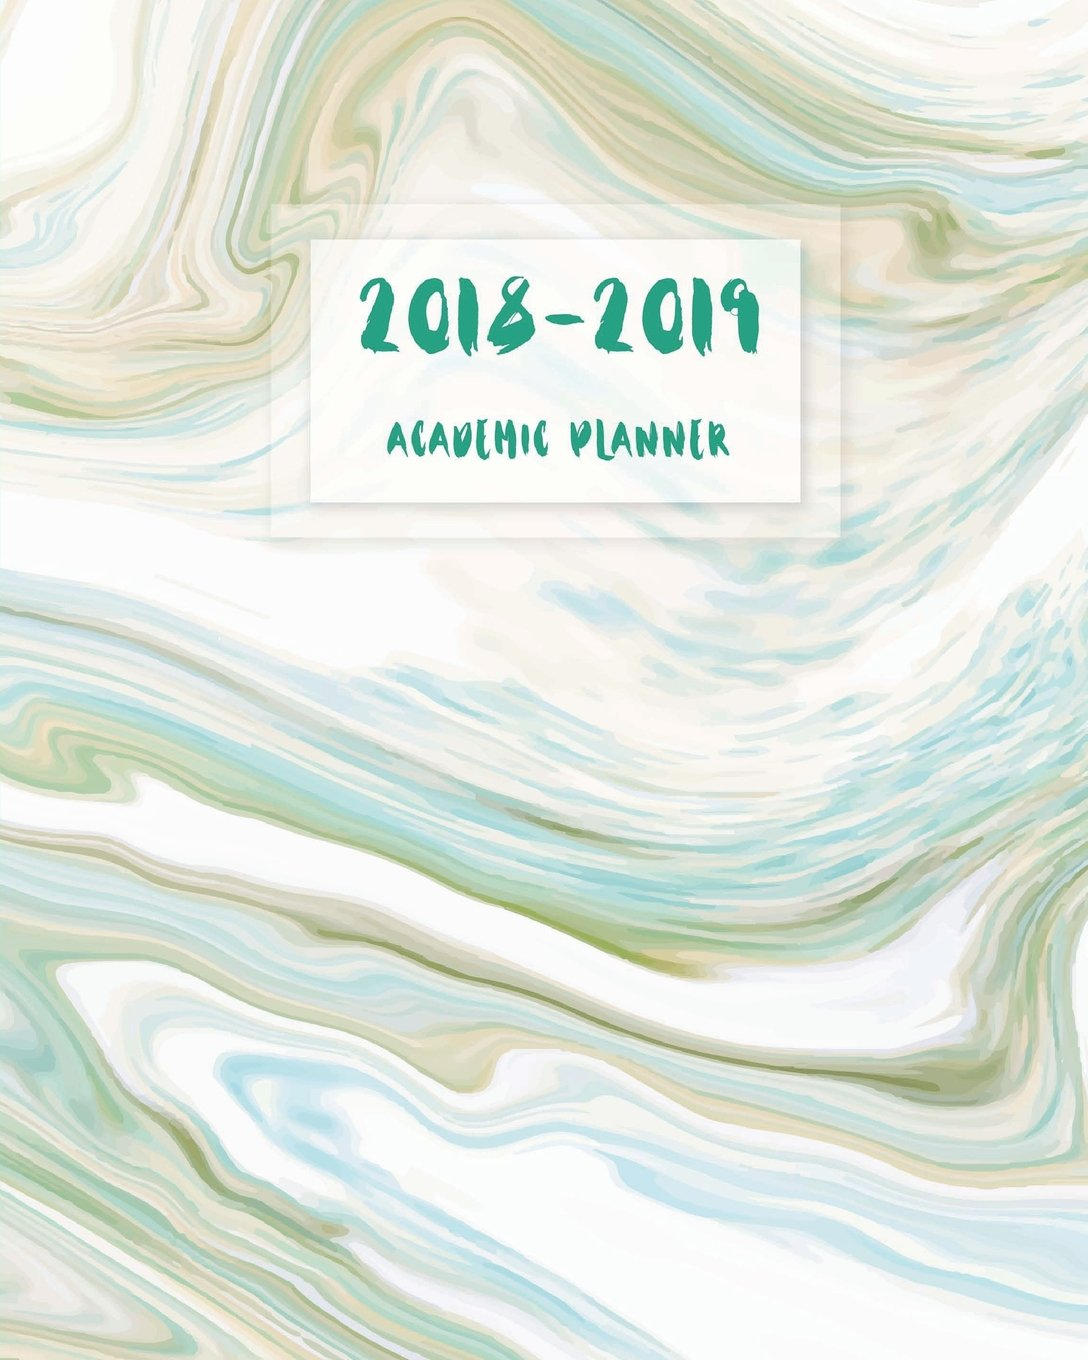 Download 2018-2019 Academic Planner Weekly And Monthly: Planner August 2018-2019, 12 Month Calendar Monthly Weekly Schedule, Daily Writing Project Planner ... (Planner August 2018 - July 2019) (Volume 2) pdf epub